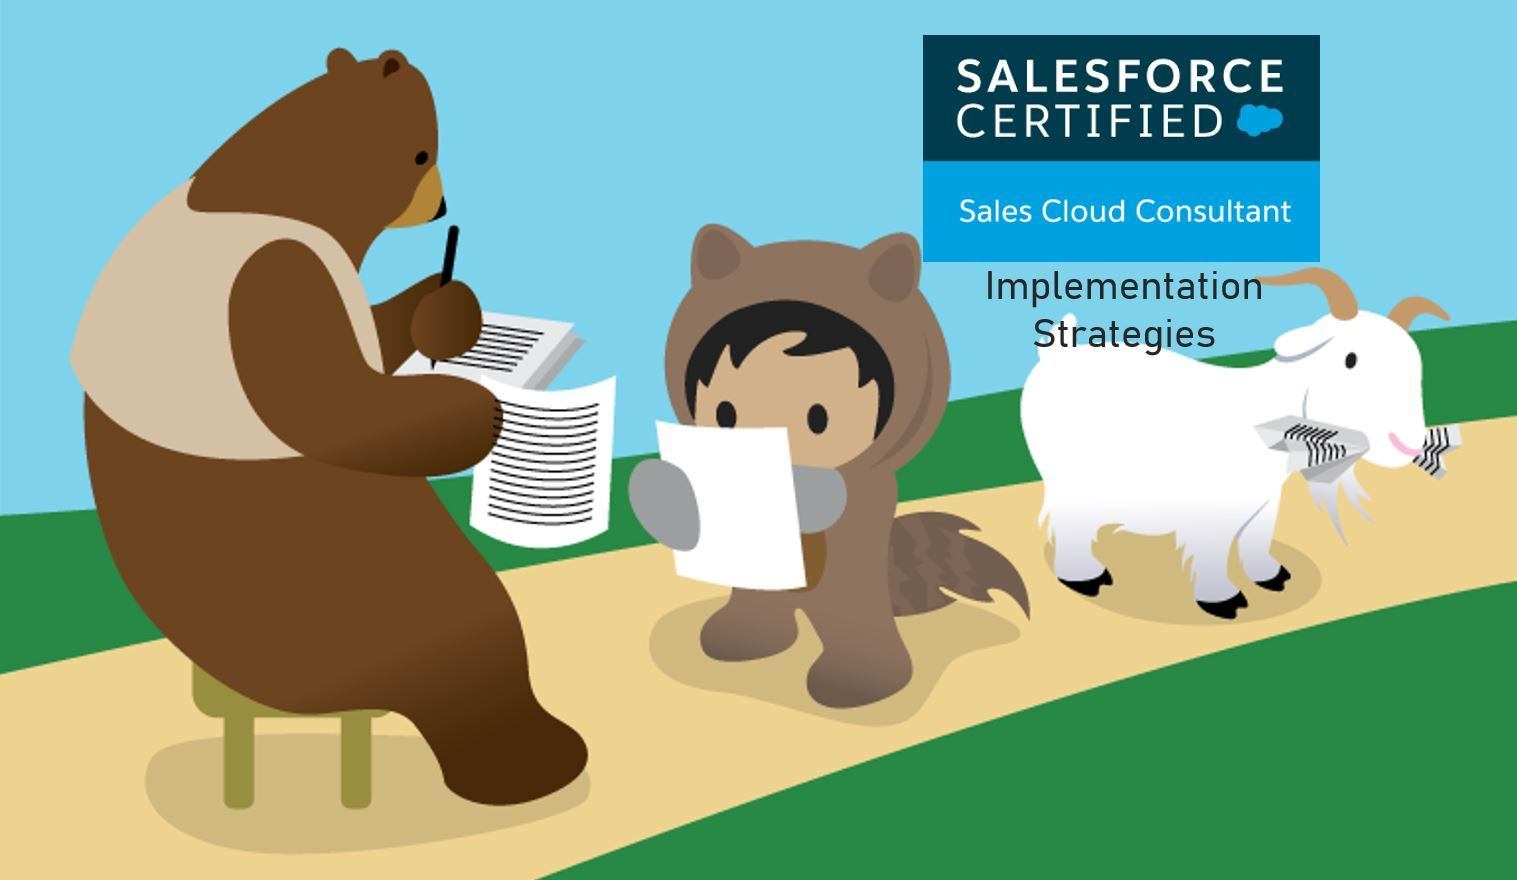 Salesforce Sales Cloud Consultant Exam Preparation: Implementation Strategies